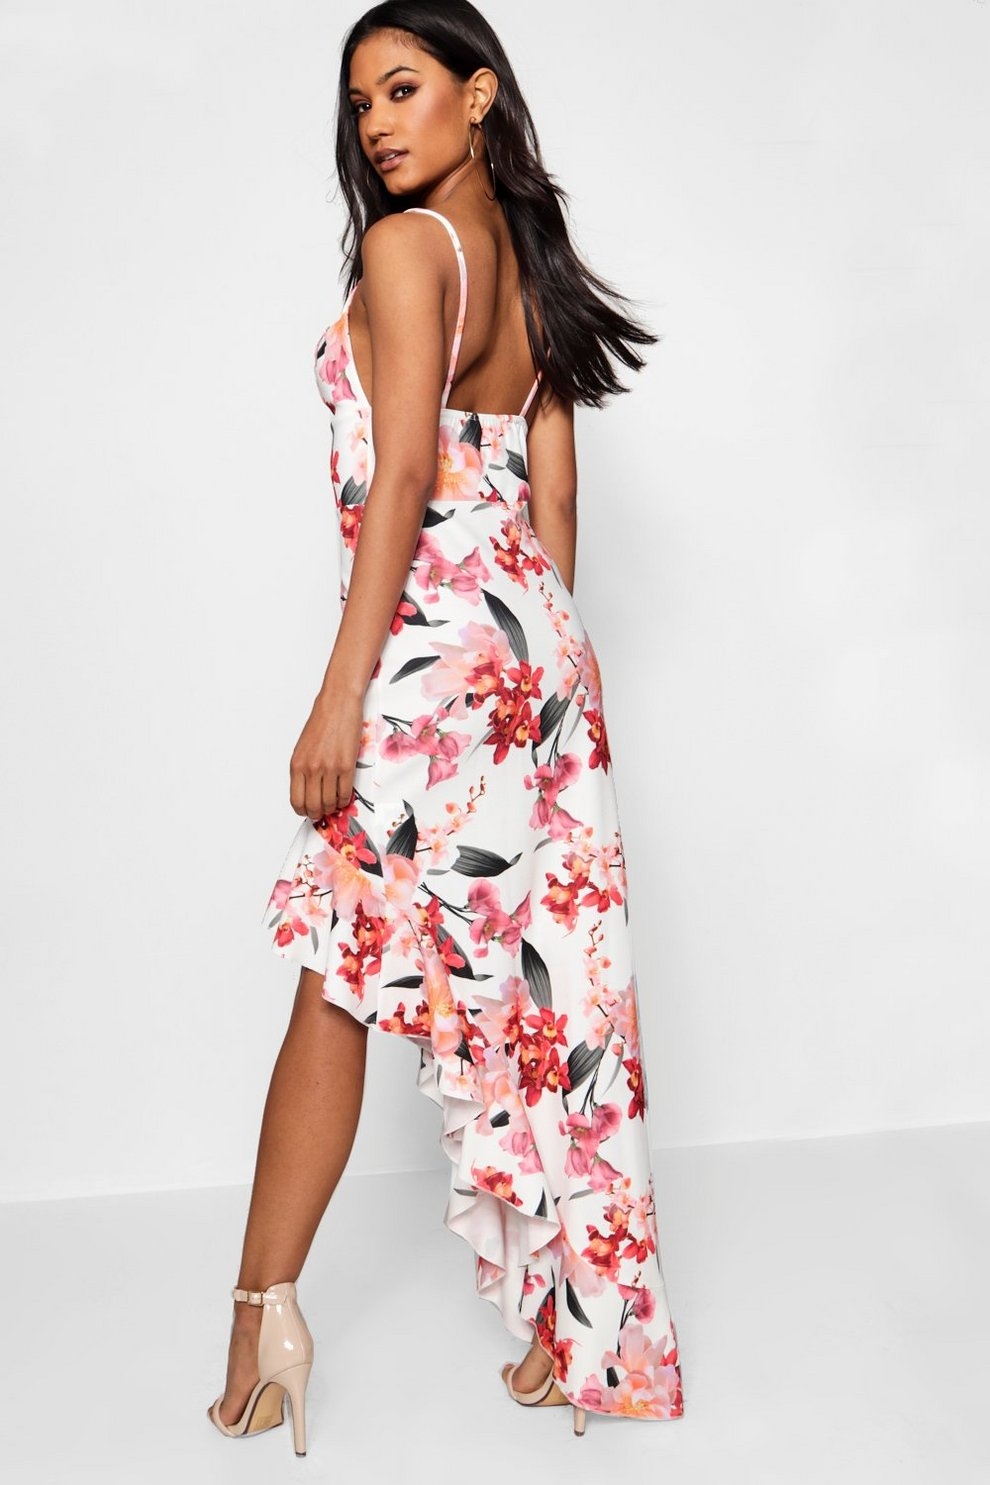 Boohoo Floral Strappy Frill Detail Maxi Dress Popular Sale Online Outlet 2018 Unisex Outlet Find Great For Cheap Cheap Online 579TJzX